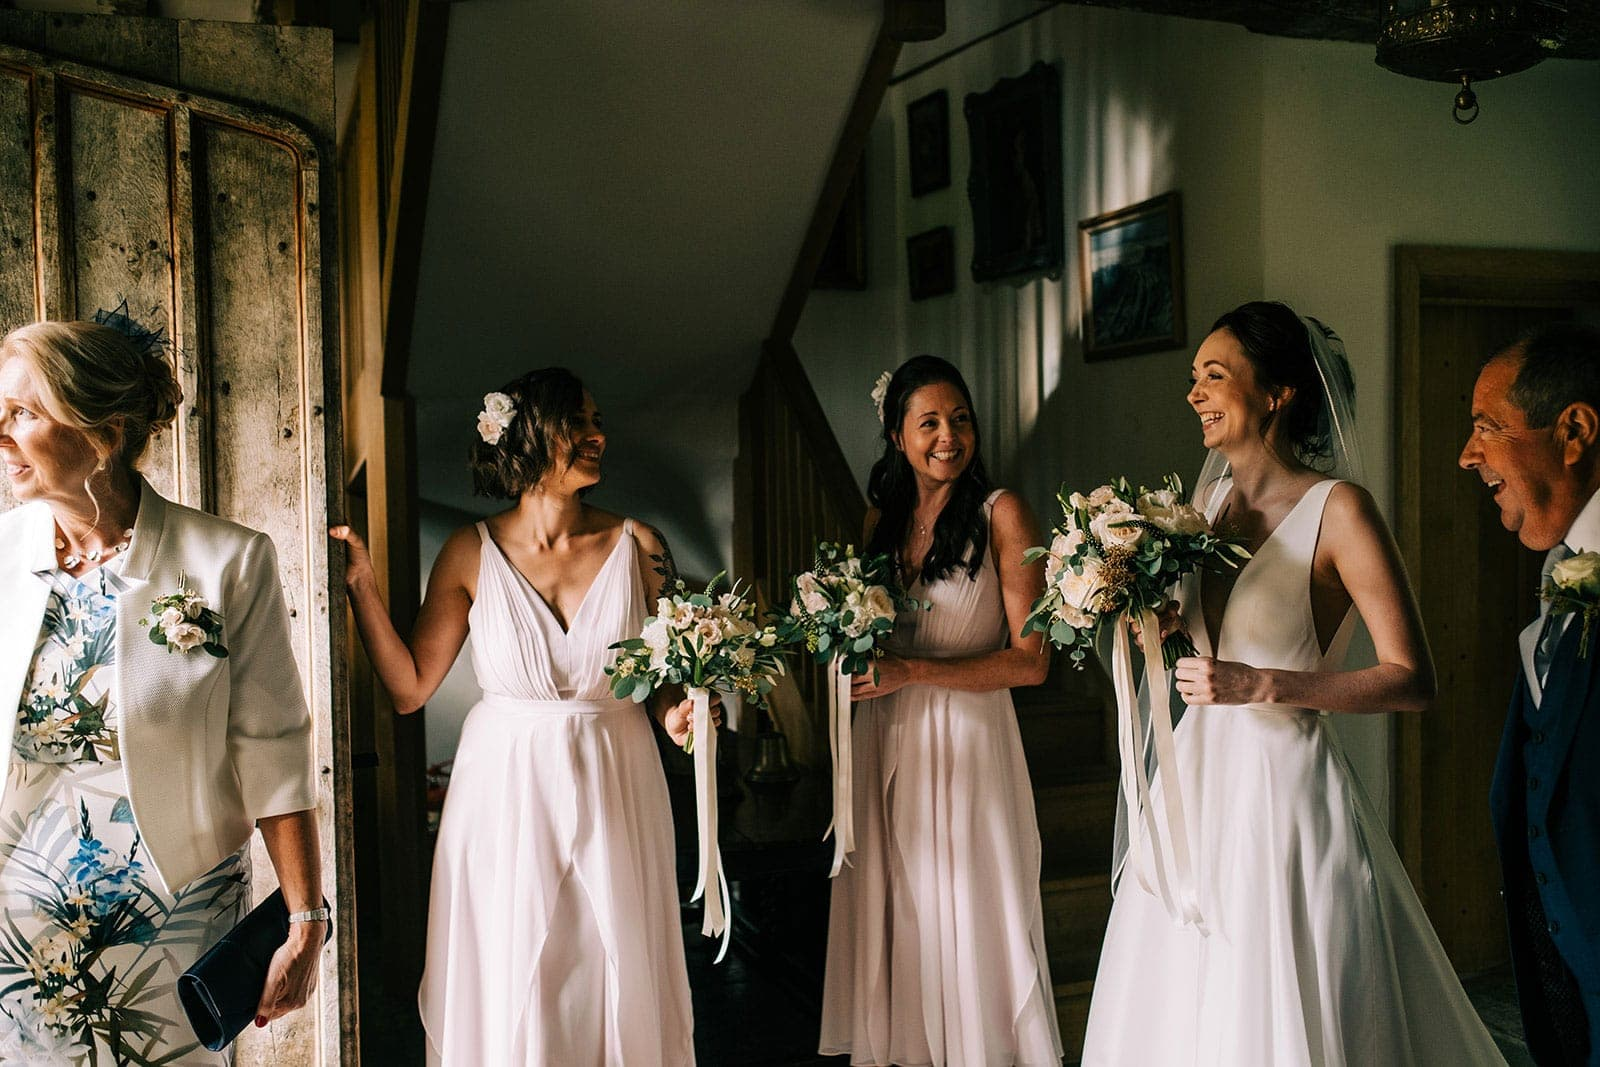 Jacquie, her bridesmaids and her parents wait to be called by the wedding planner